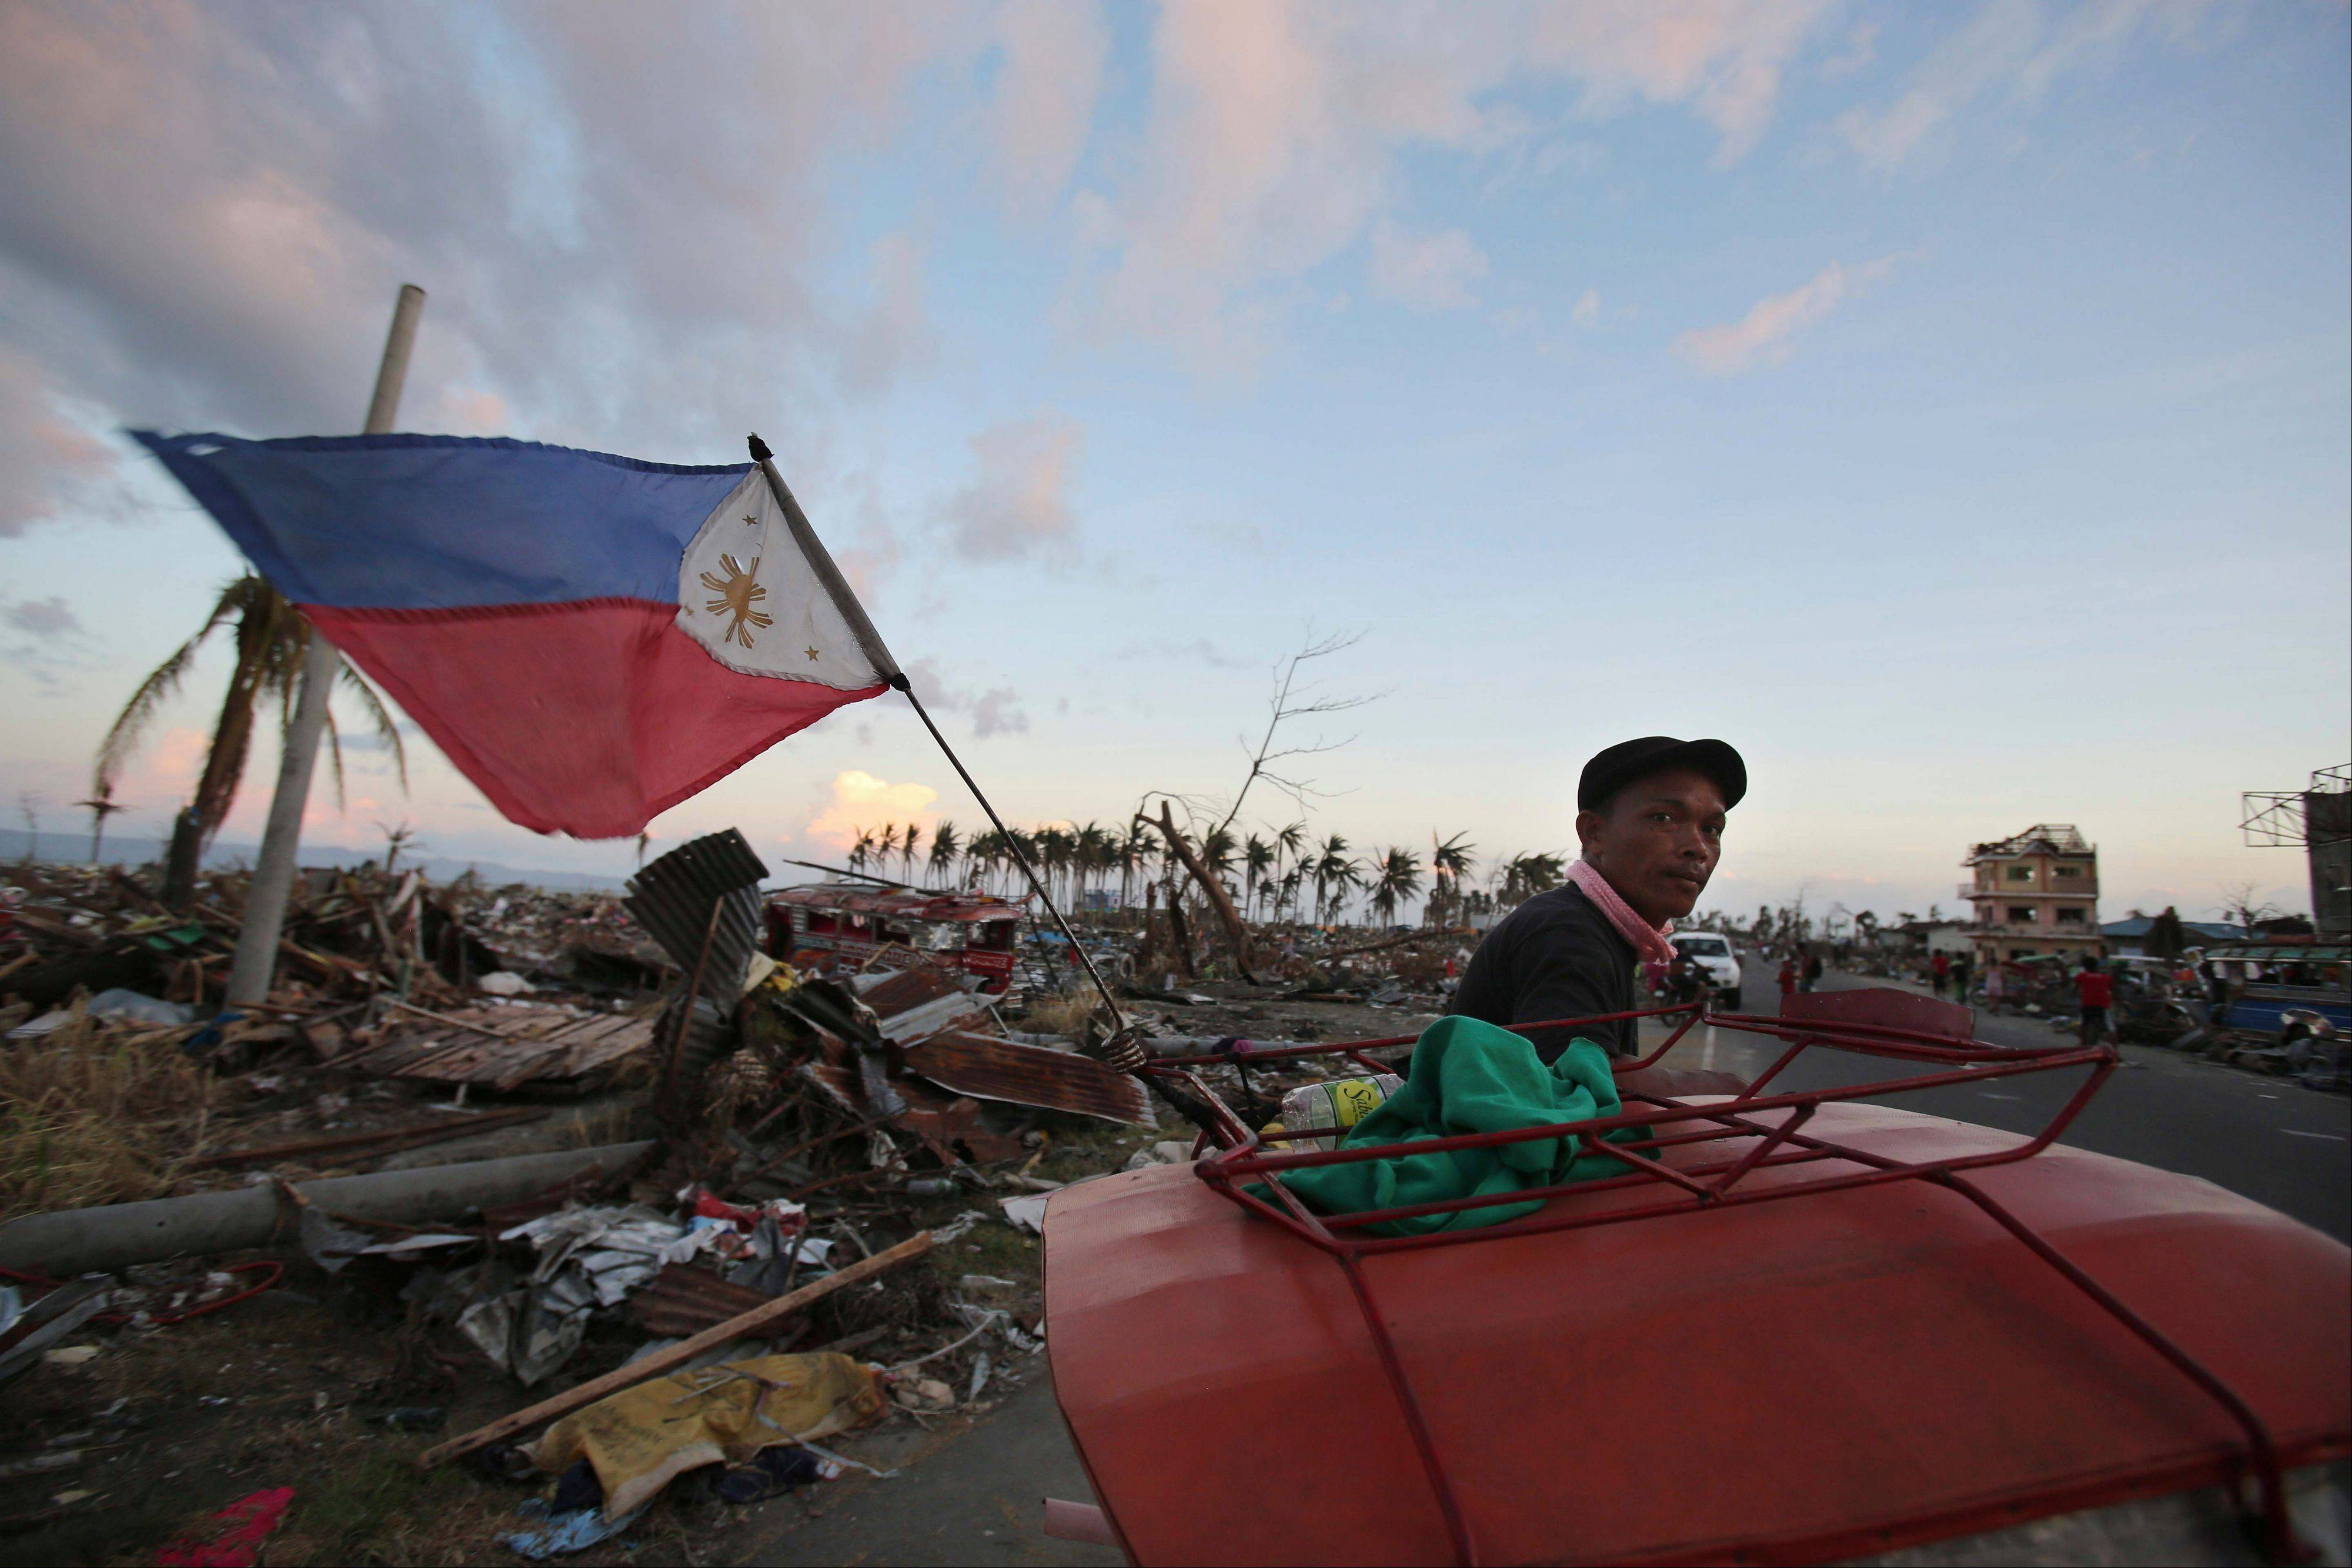 A Filipino pedicab driver pedals past damaged homes at typhoon hit Tacloban city, Leyte province, central Philippines on Friday, Nov. 15, 2013. Typhoon Haiyan, one of the most powerful storms on record, hit the country's eastern seaboard Nov. 8, leaving a wide swath of destruction.